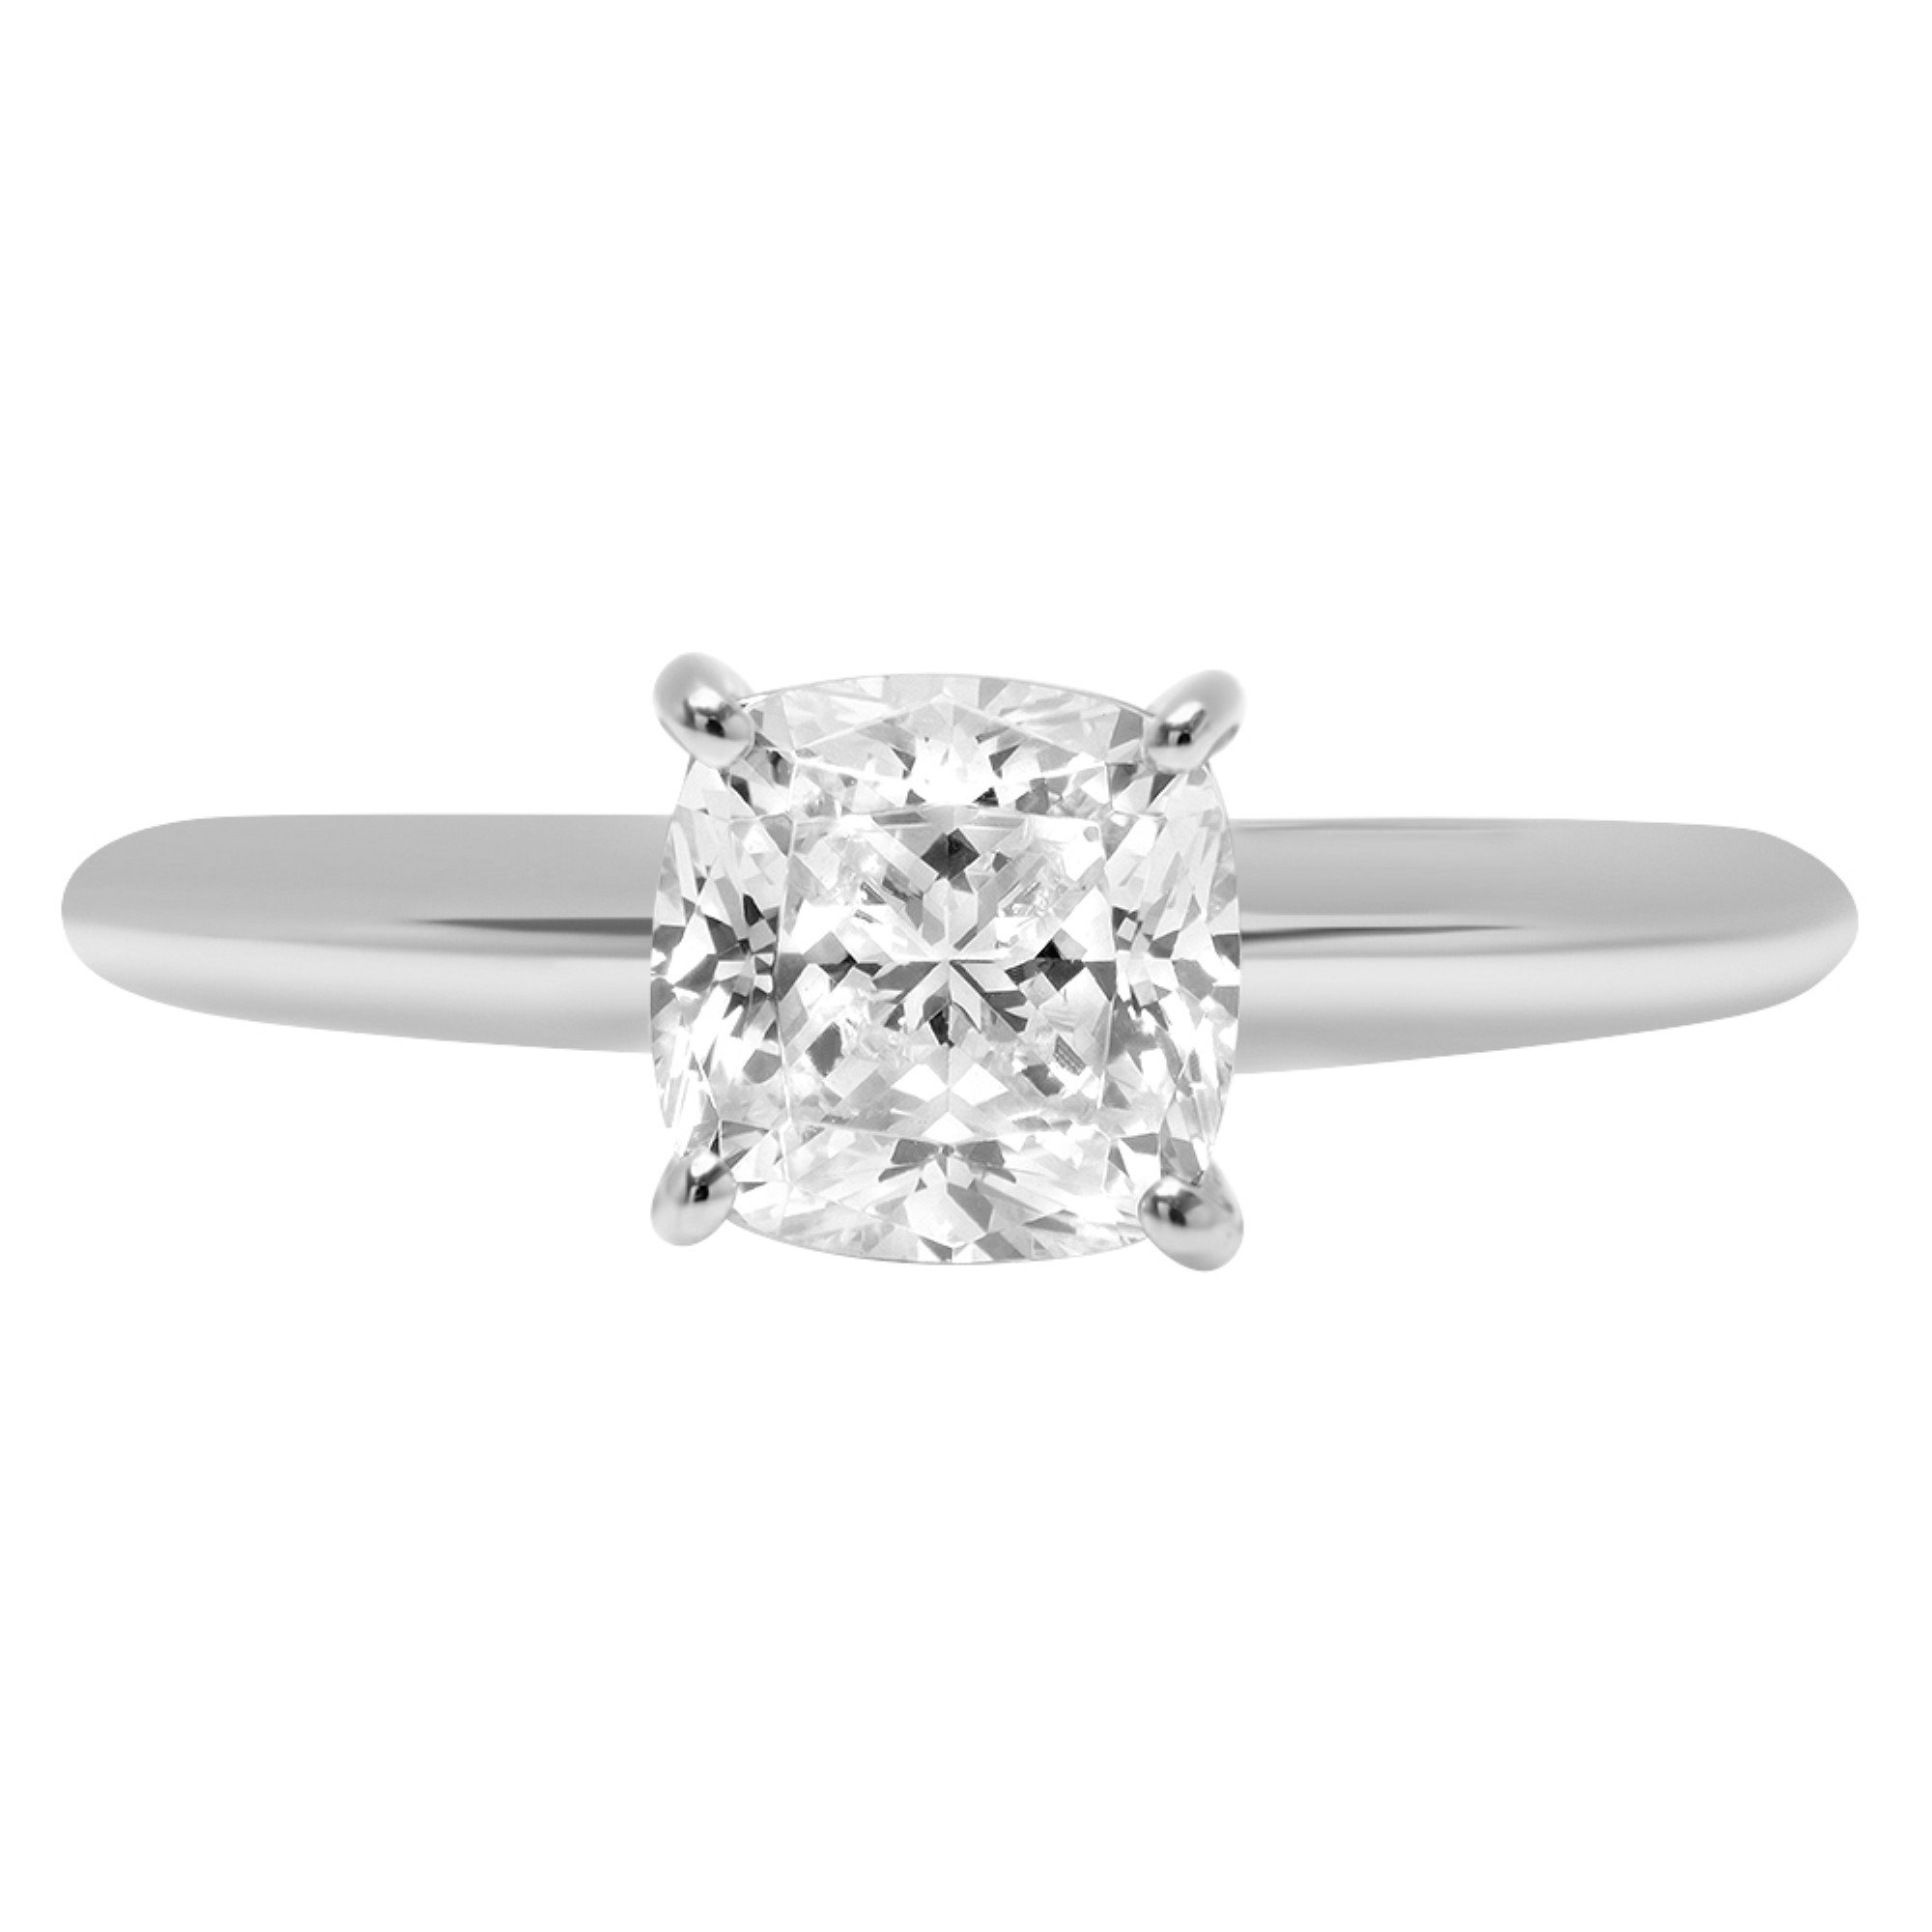 1.50 ct Brilliant Cushion Cut Solitaire Highest Quality Moissanite Ideal VVS1 D 4-Prong Engagement Wedding Bridal Promise Anniversary Ring in Solid Real 14k White Gold for Women, Size 8